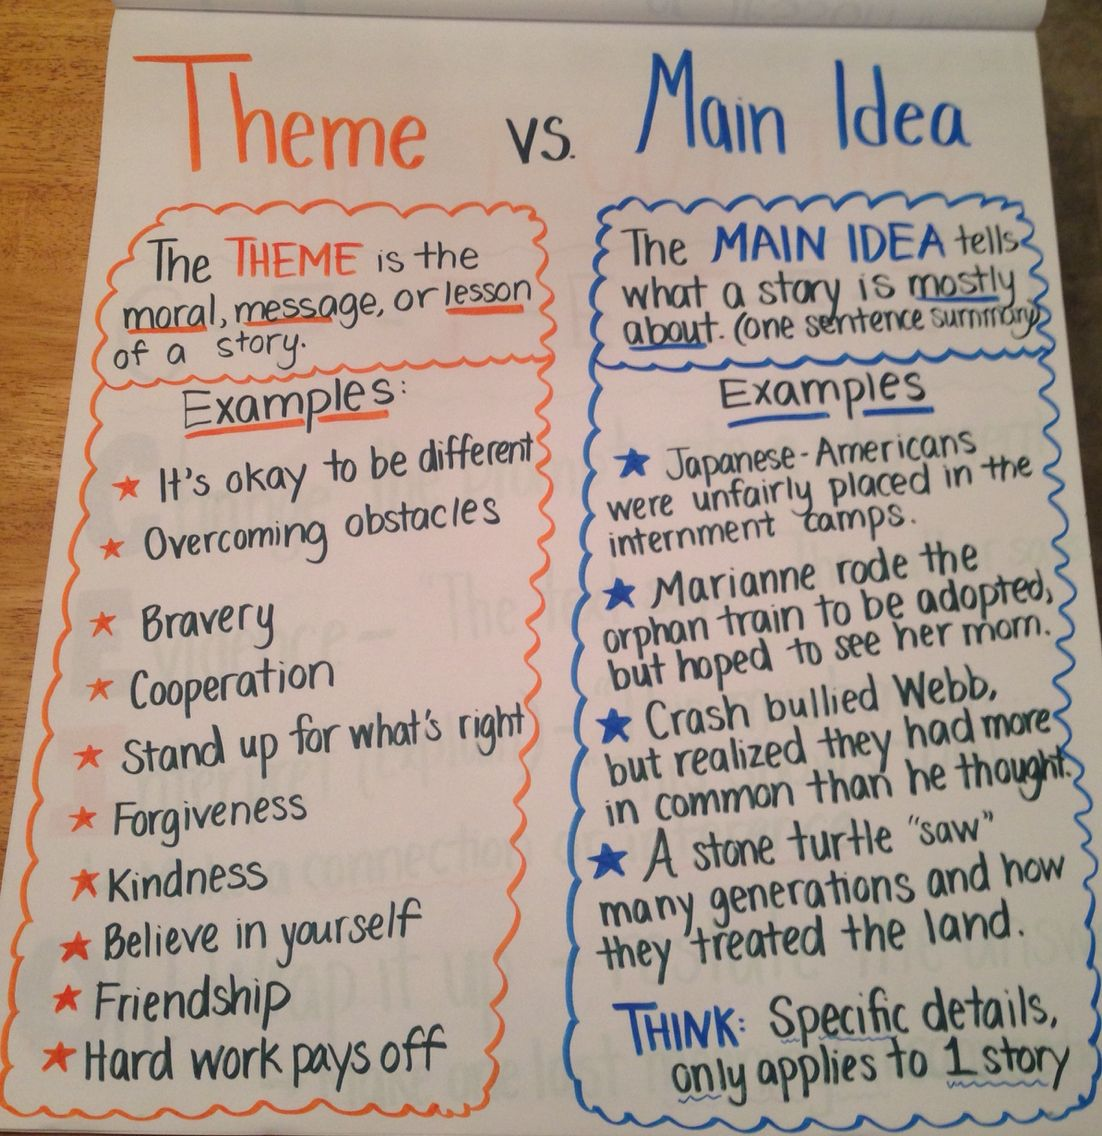 theme vs main idea idea for anchor chart from teaching a theme vs main idea idea for anchor chart from teaching a mountaintop view